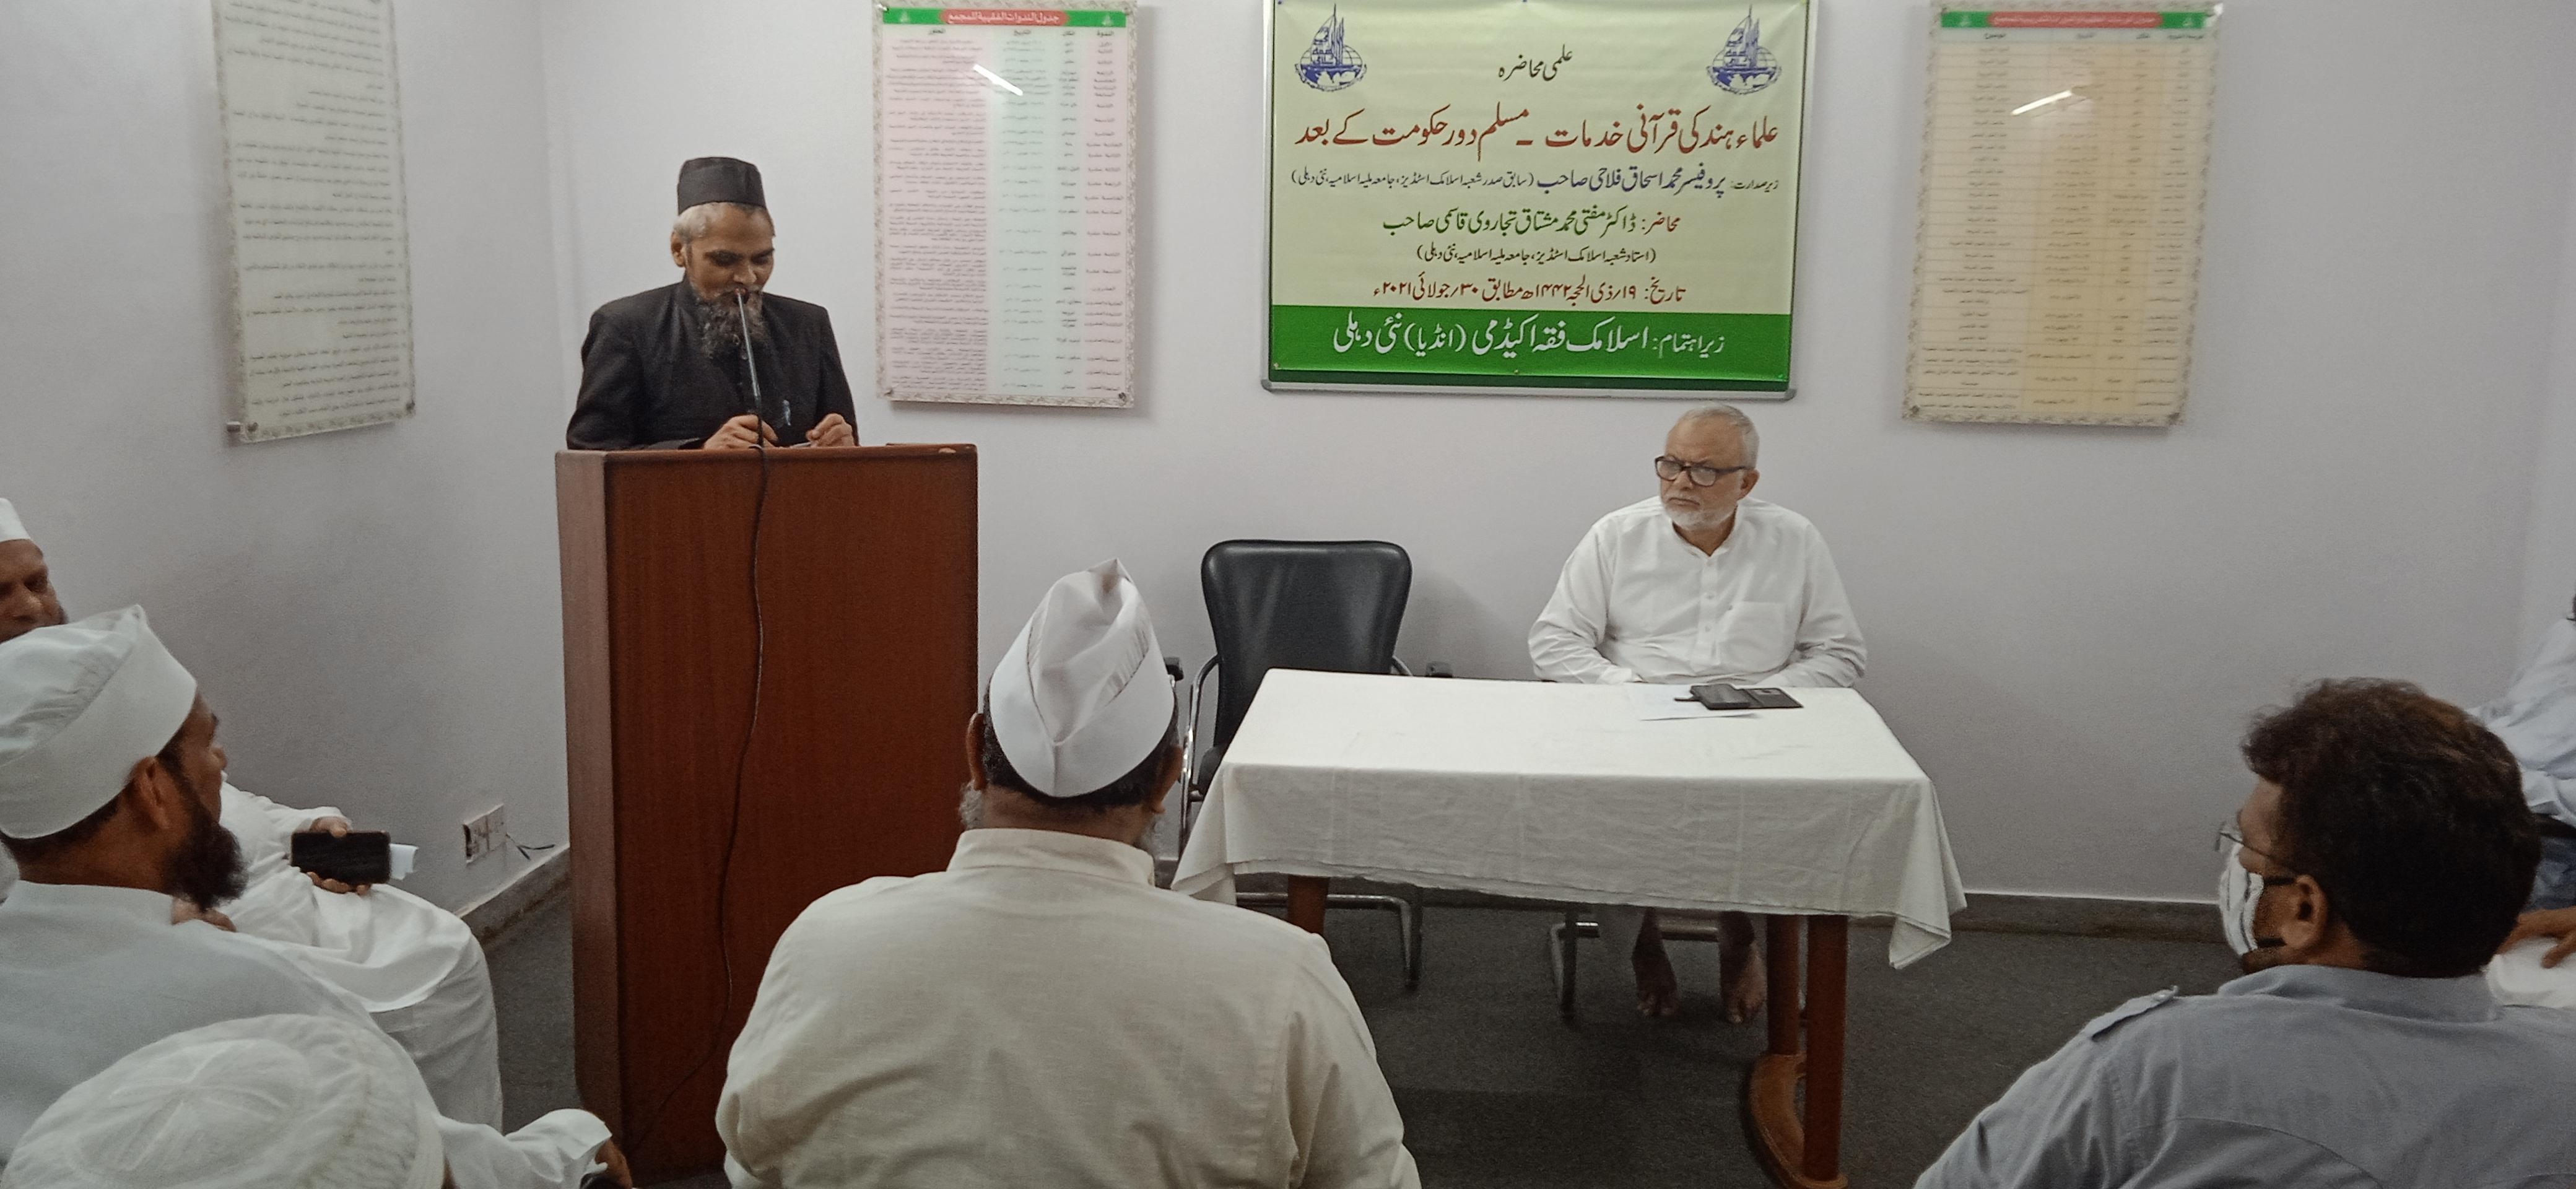 Quranic Services of Indian Ulema's - After the Muslim Rule